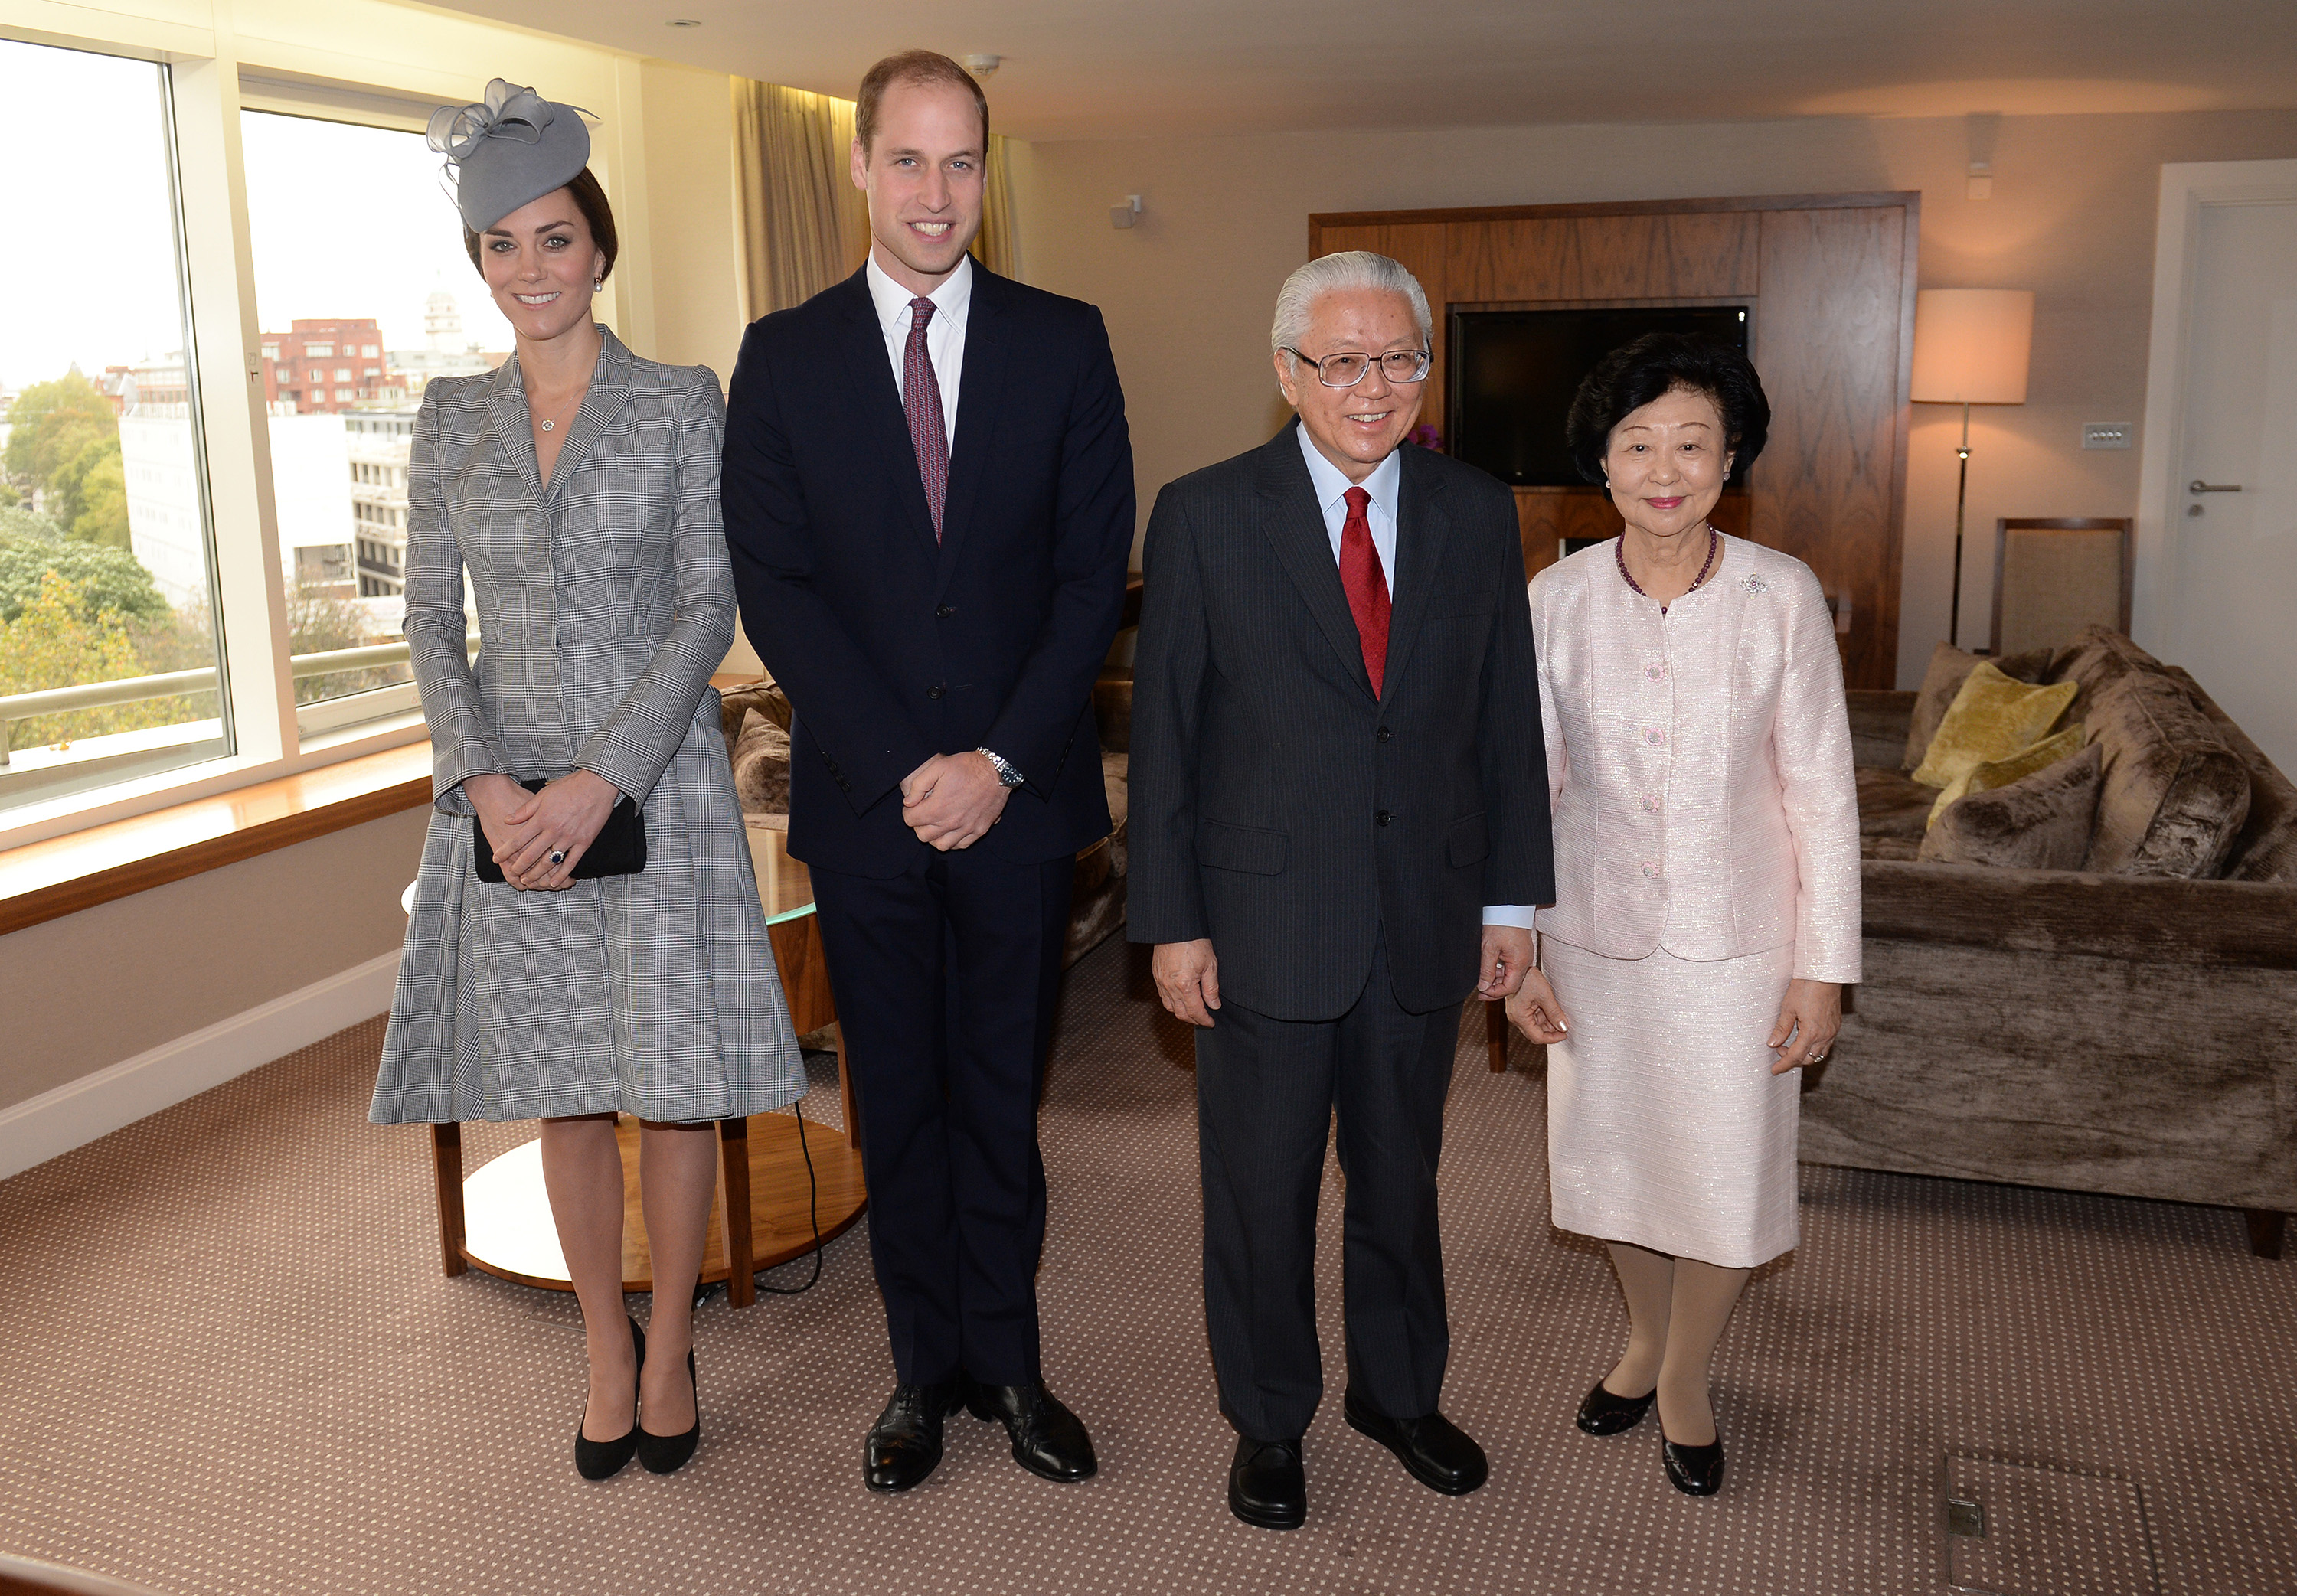 The Duke and Duchess of Cambridge greet the president of Singapore